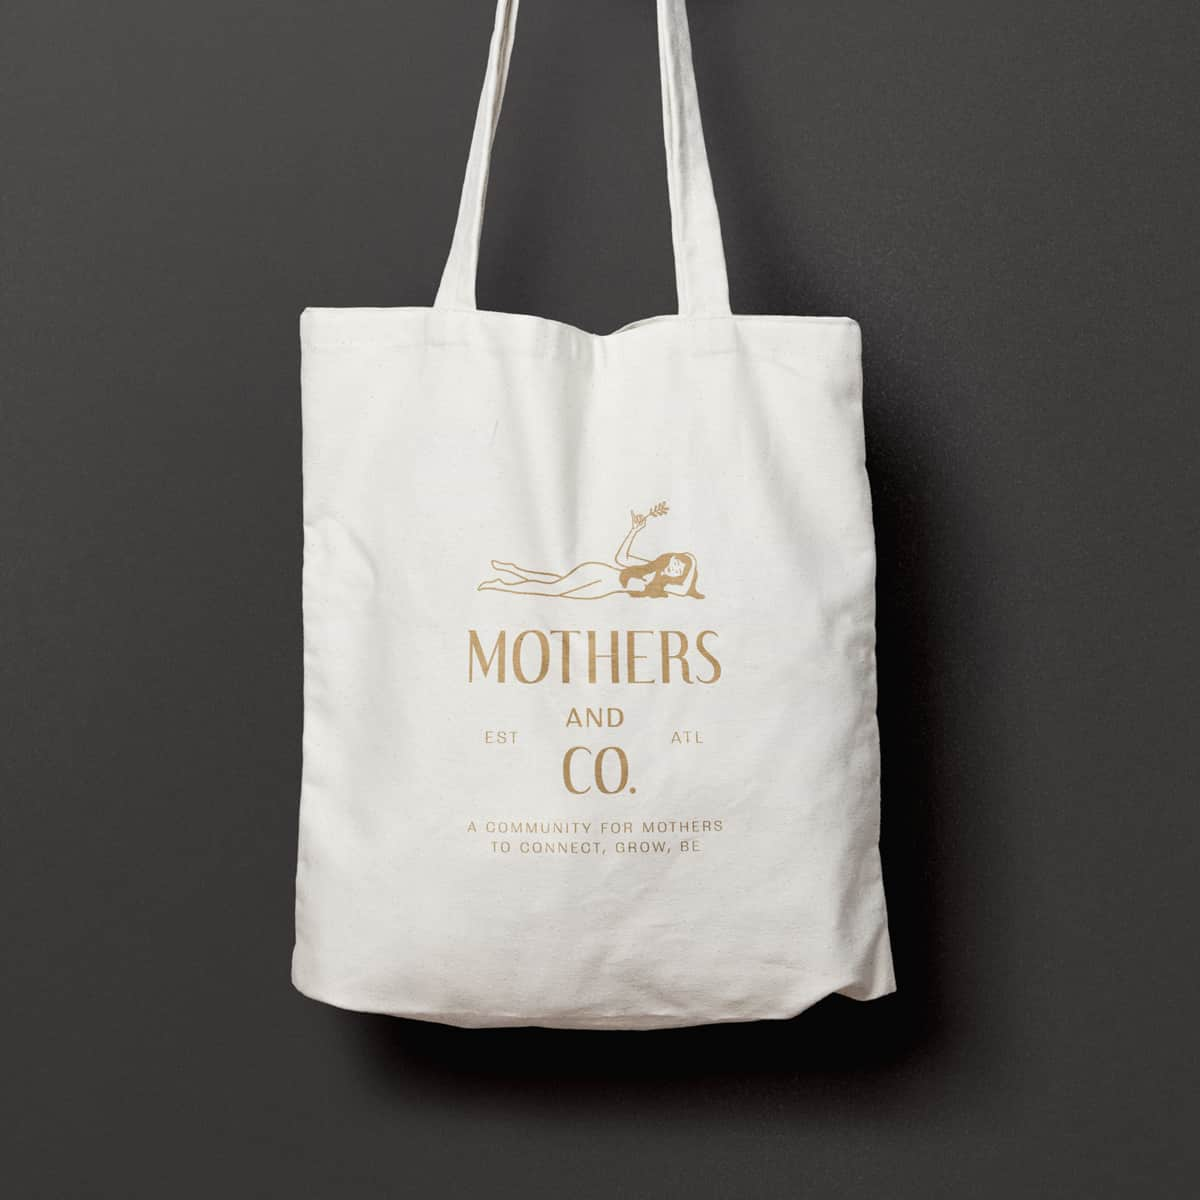 &_casestudies-Mo&Co-tote-2